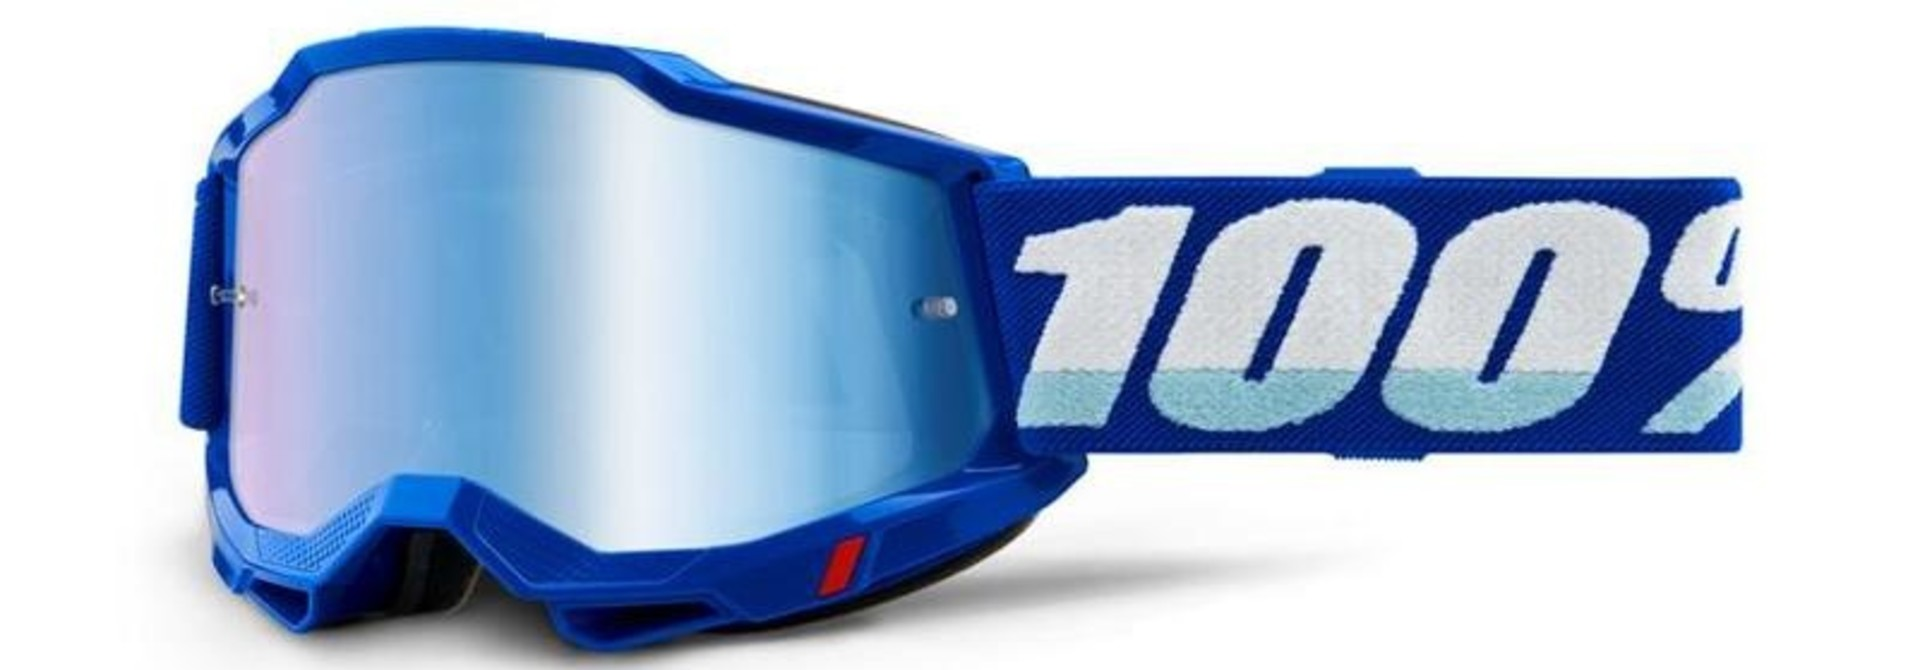 100% Accuri2 Mirror Goggle (1 Extra Clear Lens Included)